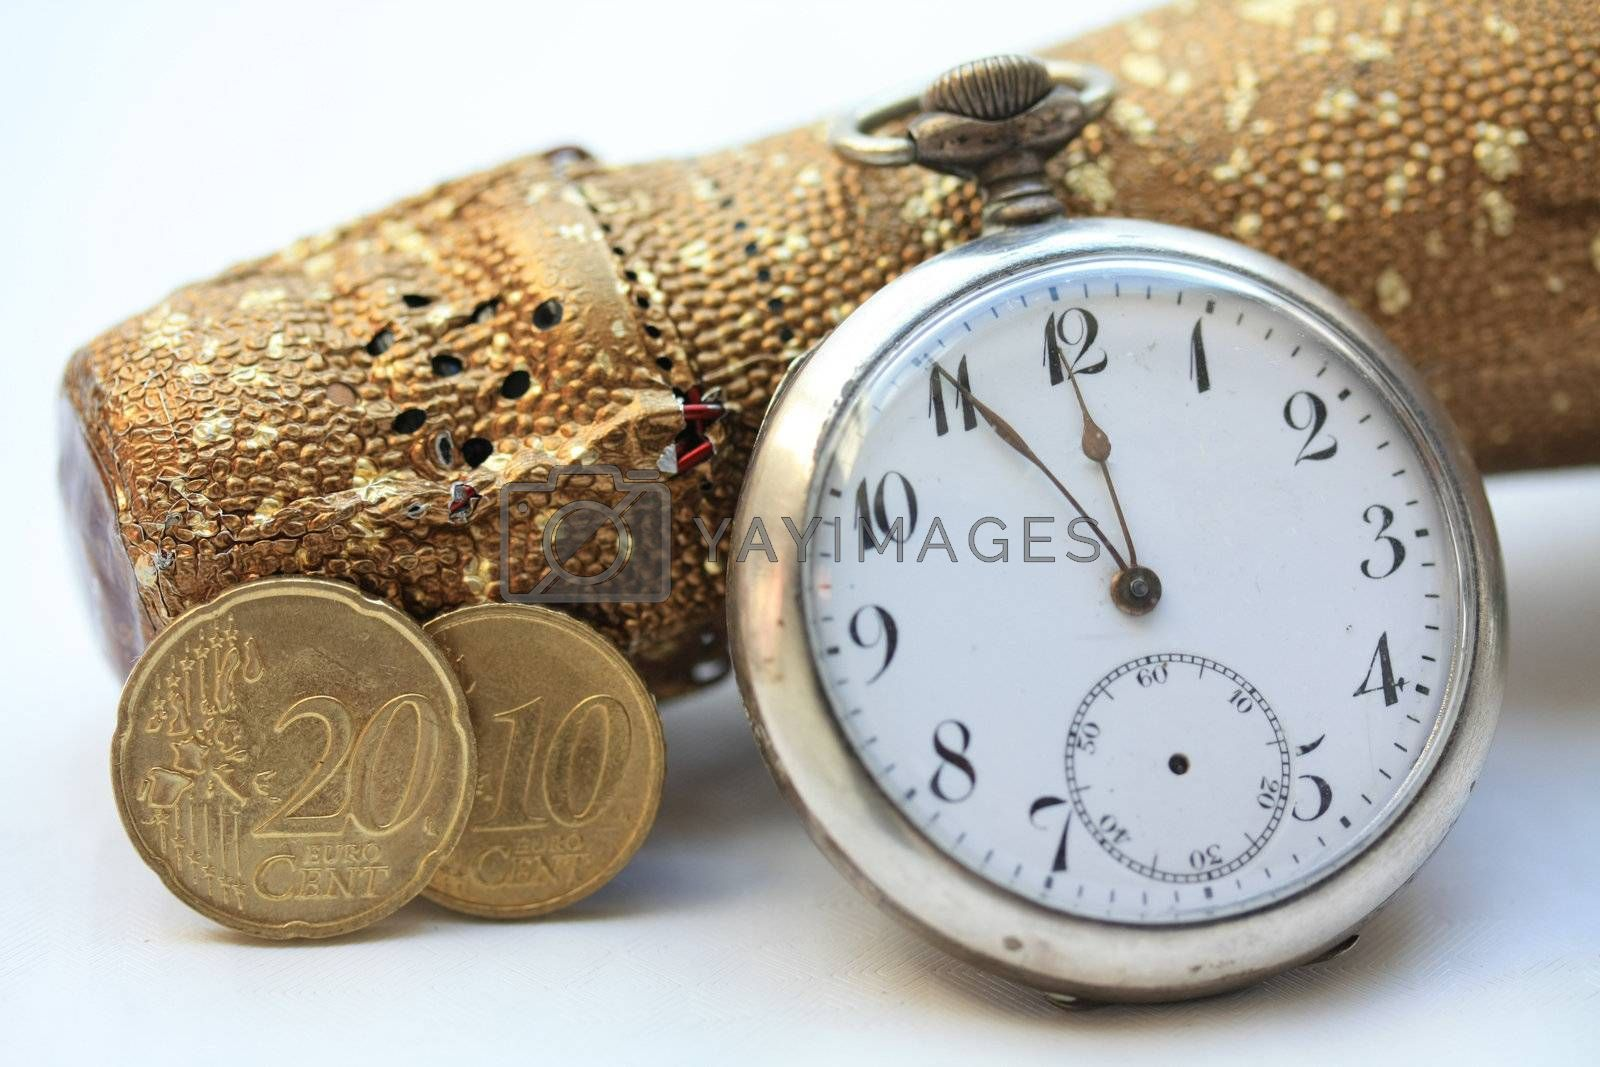 Royalty free image of New Year 2010 by studioportosabbia